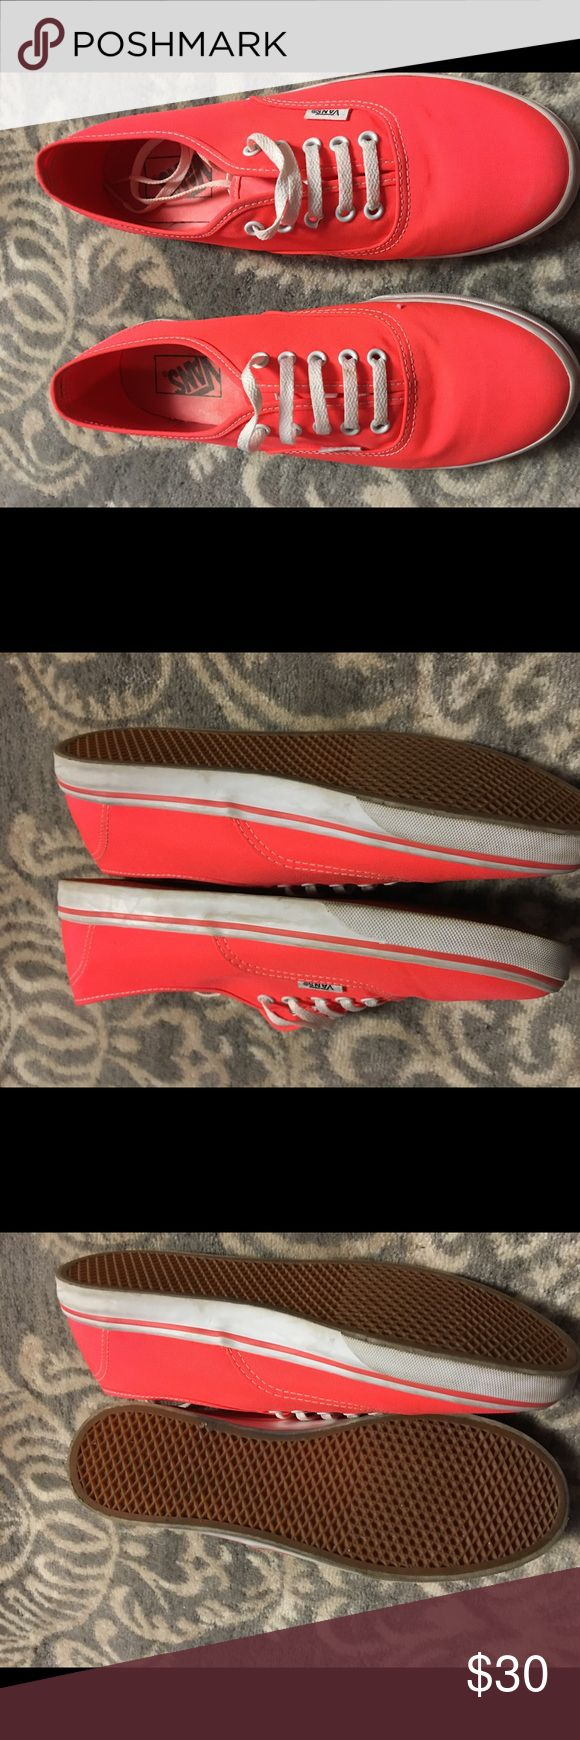 Vans coral size 8 1/2 Coral vans wore 1 time .. size 8 1/2 Vans Shoes Sneakers